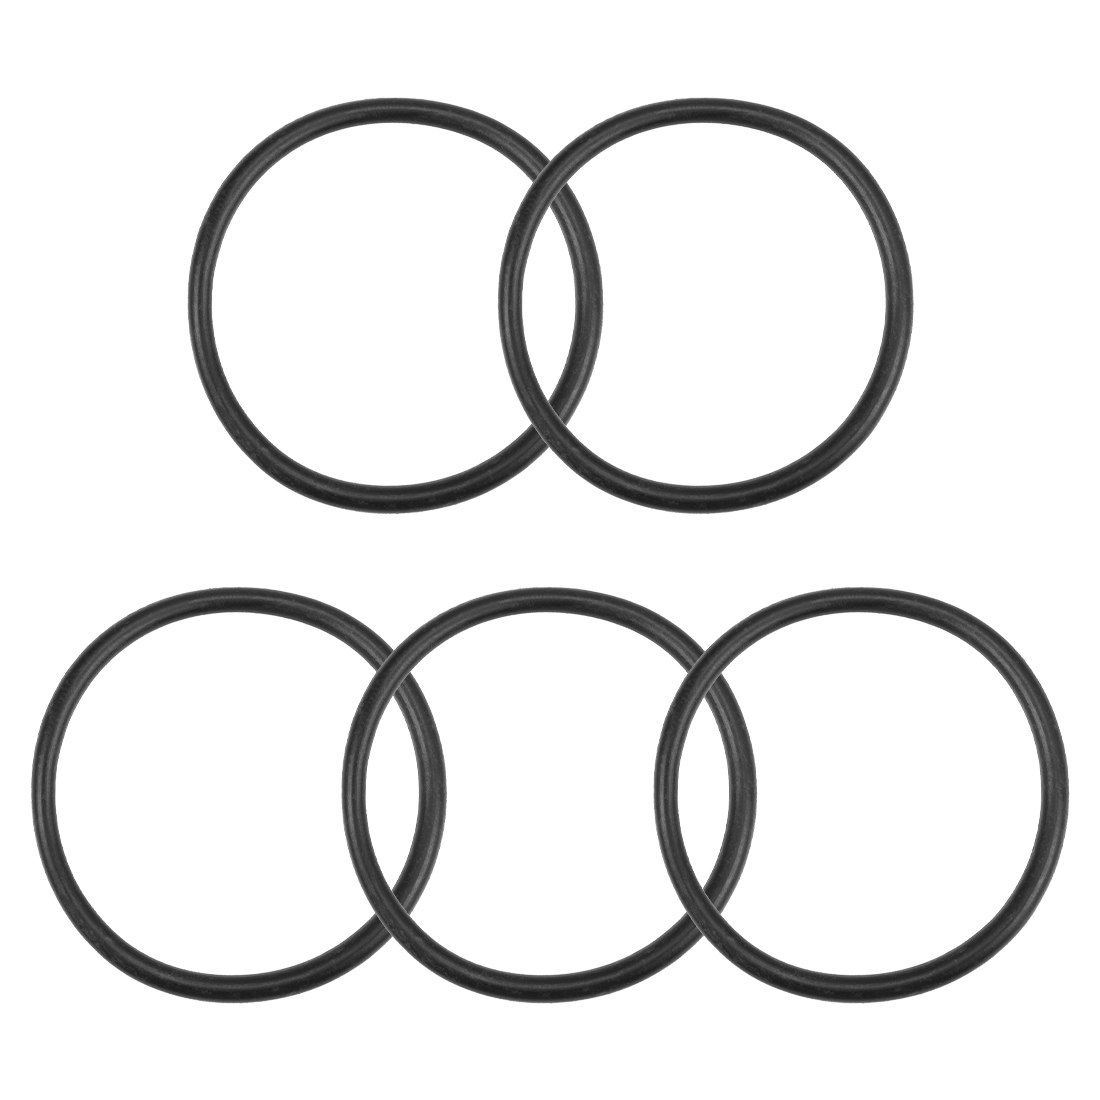 O-Rings Nitrile Rubber 34.5mm x 39.8mm x 2.65mm Round Seal Gasket 5 Pcs